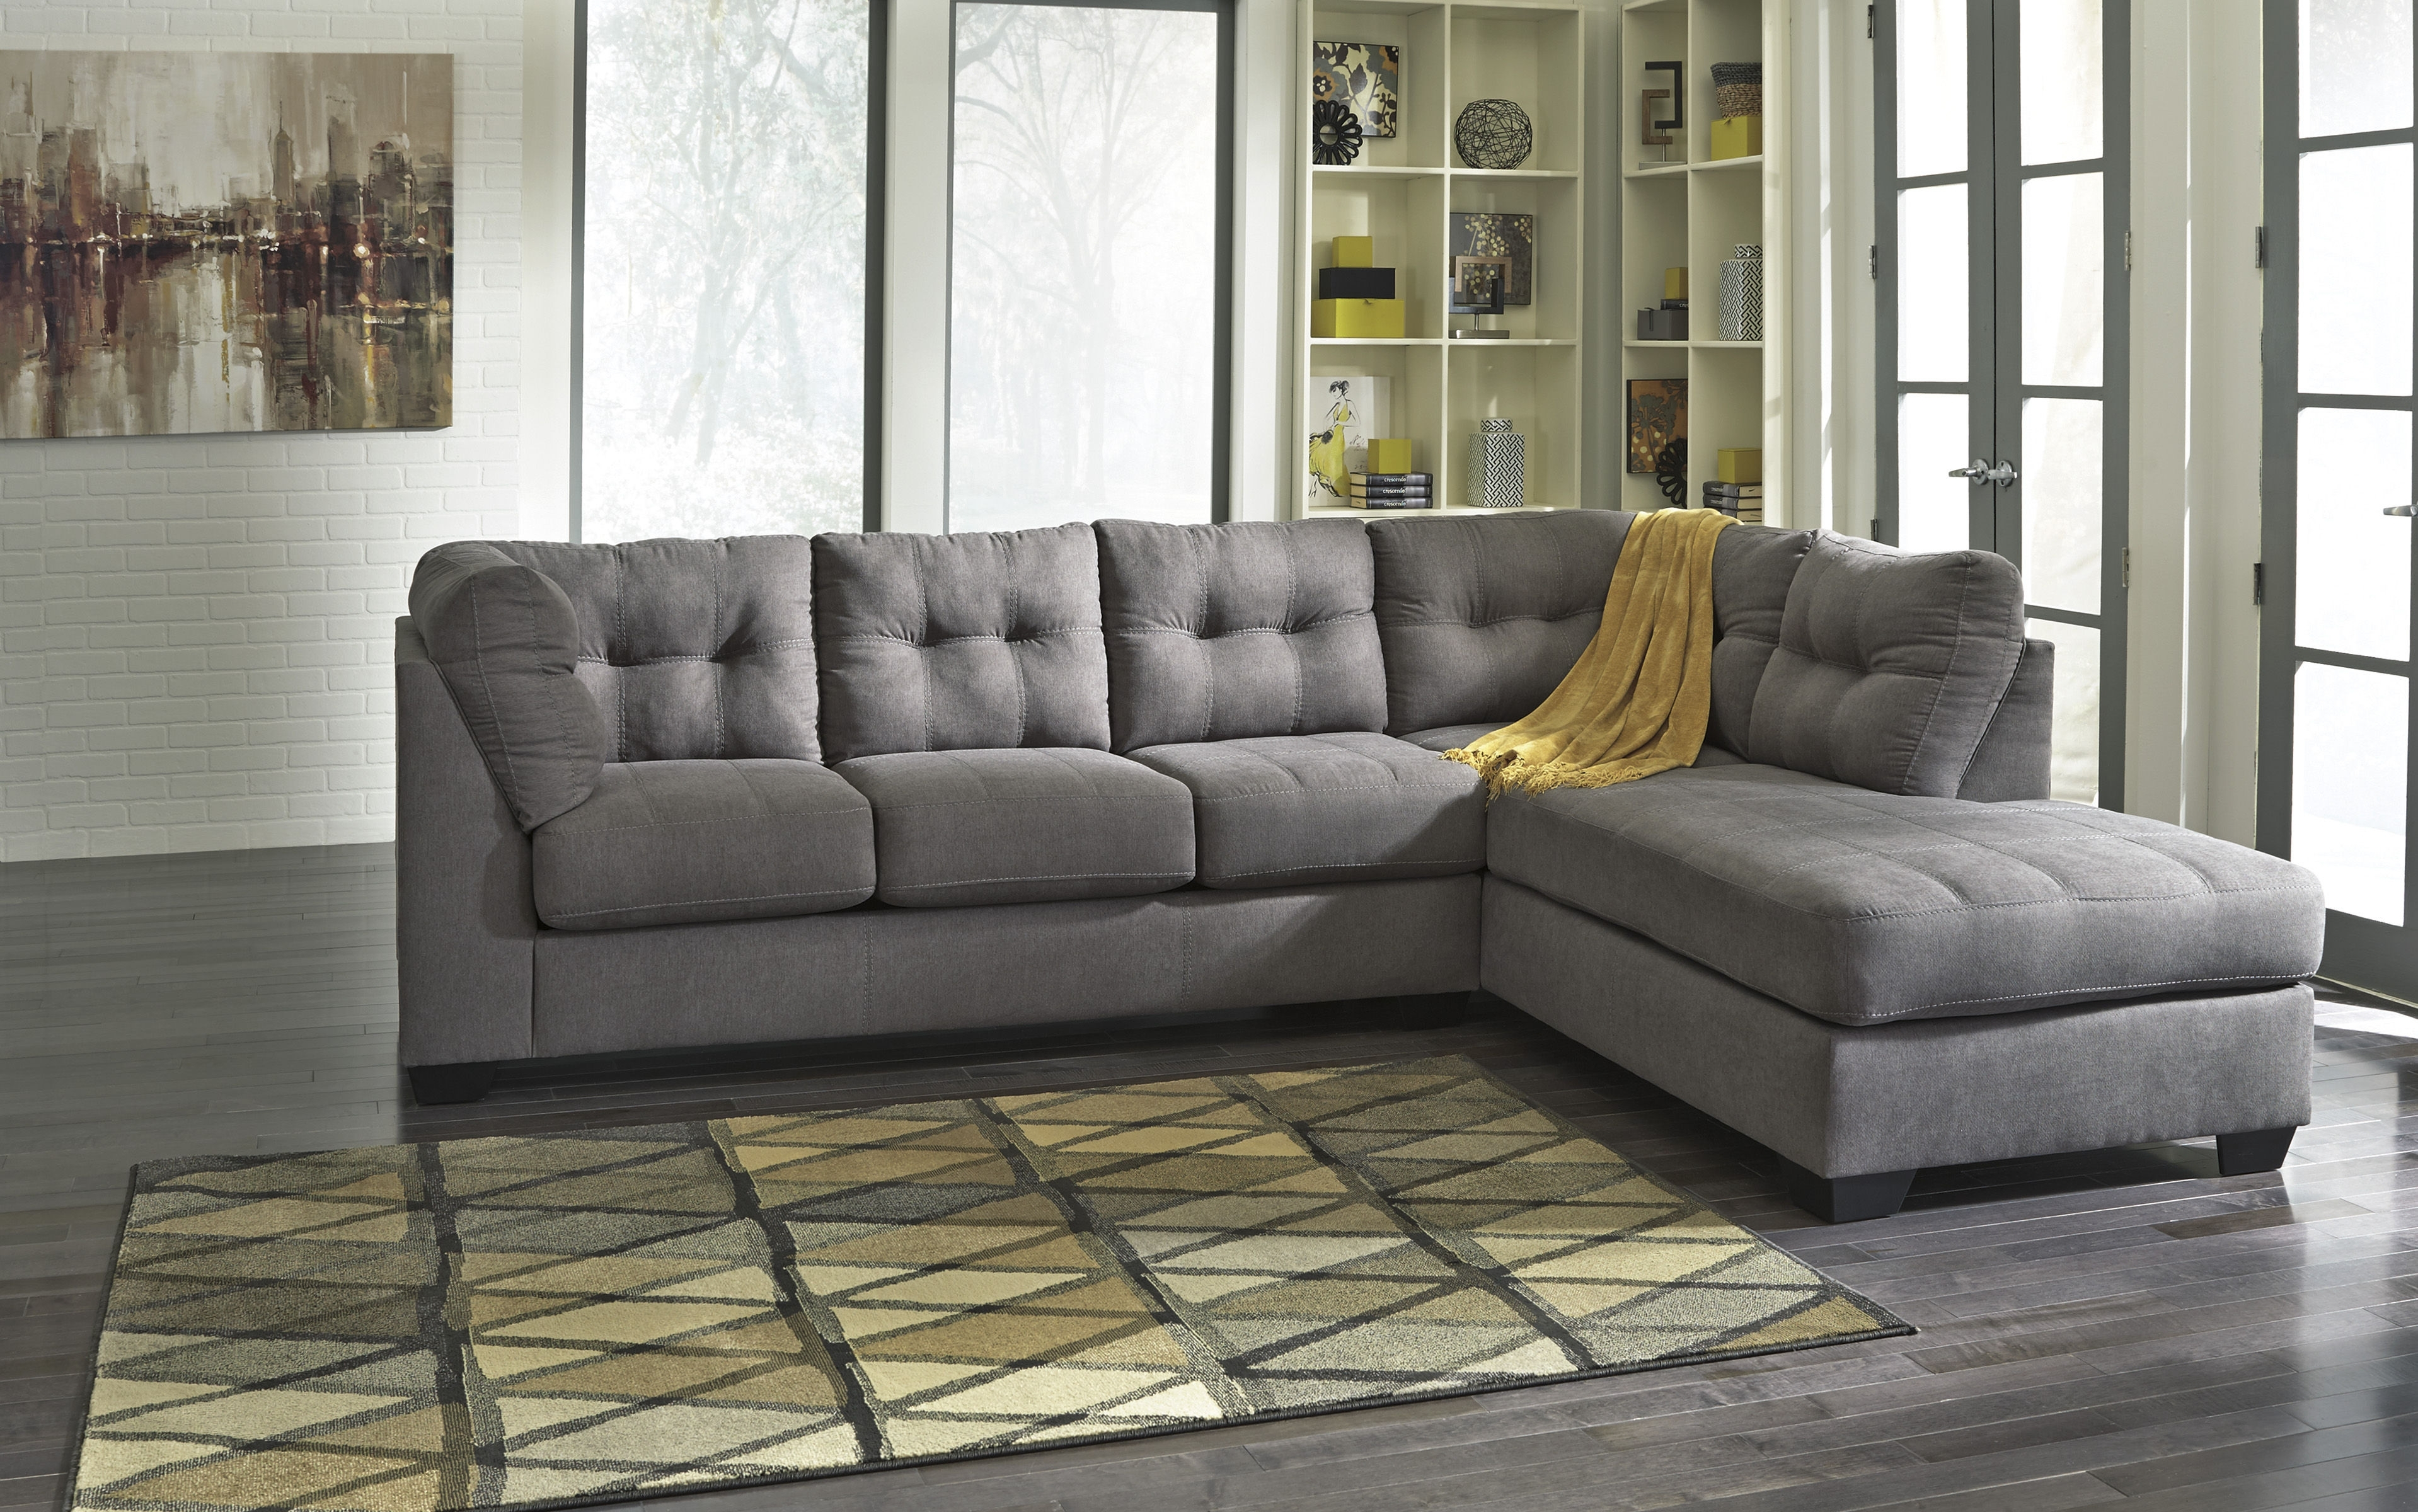 Ashley Furniture Maier Charcoal Raf Chaise Sectional | The Classy Home With Lucy Dark Grey 2 Piece Sleeper Sectionals With Laf Chaise (View 10 of 25)